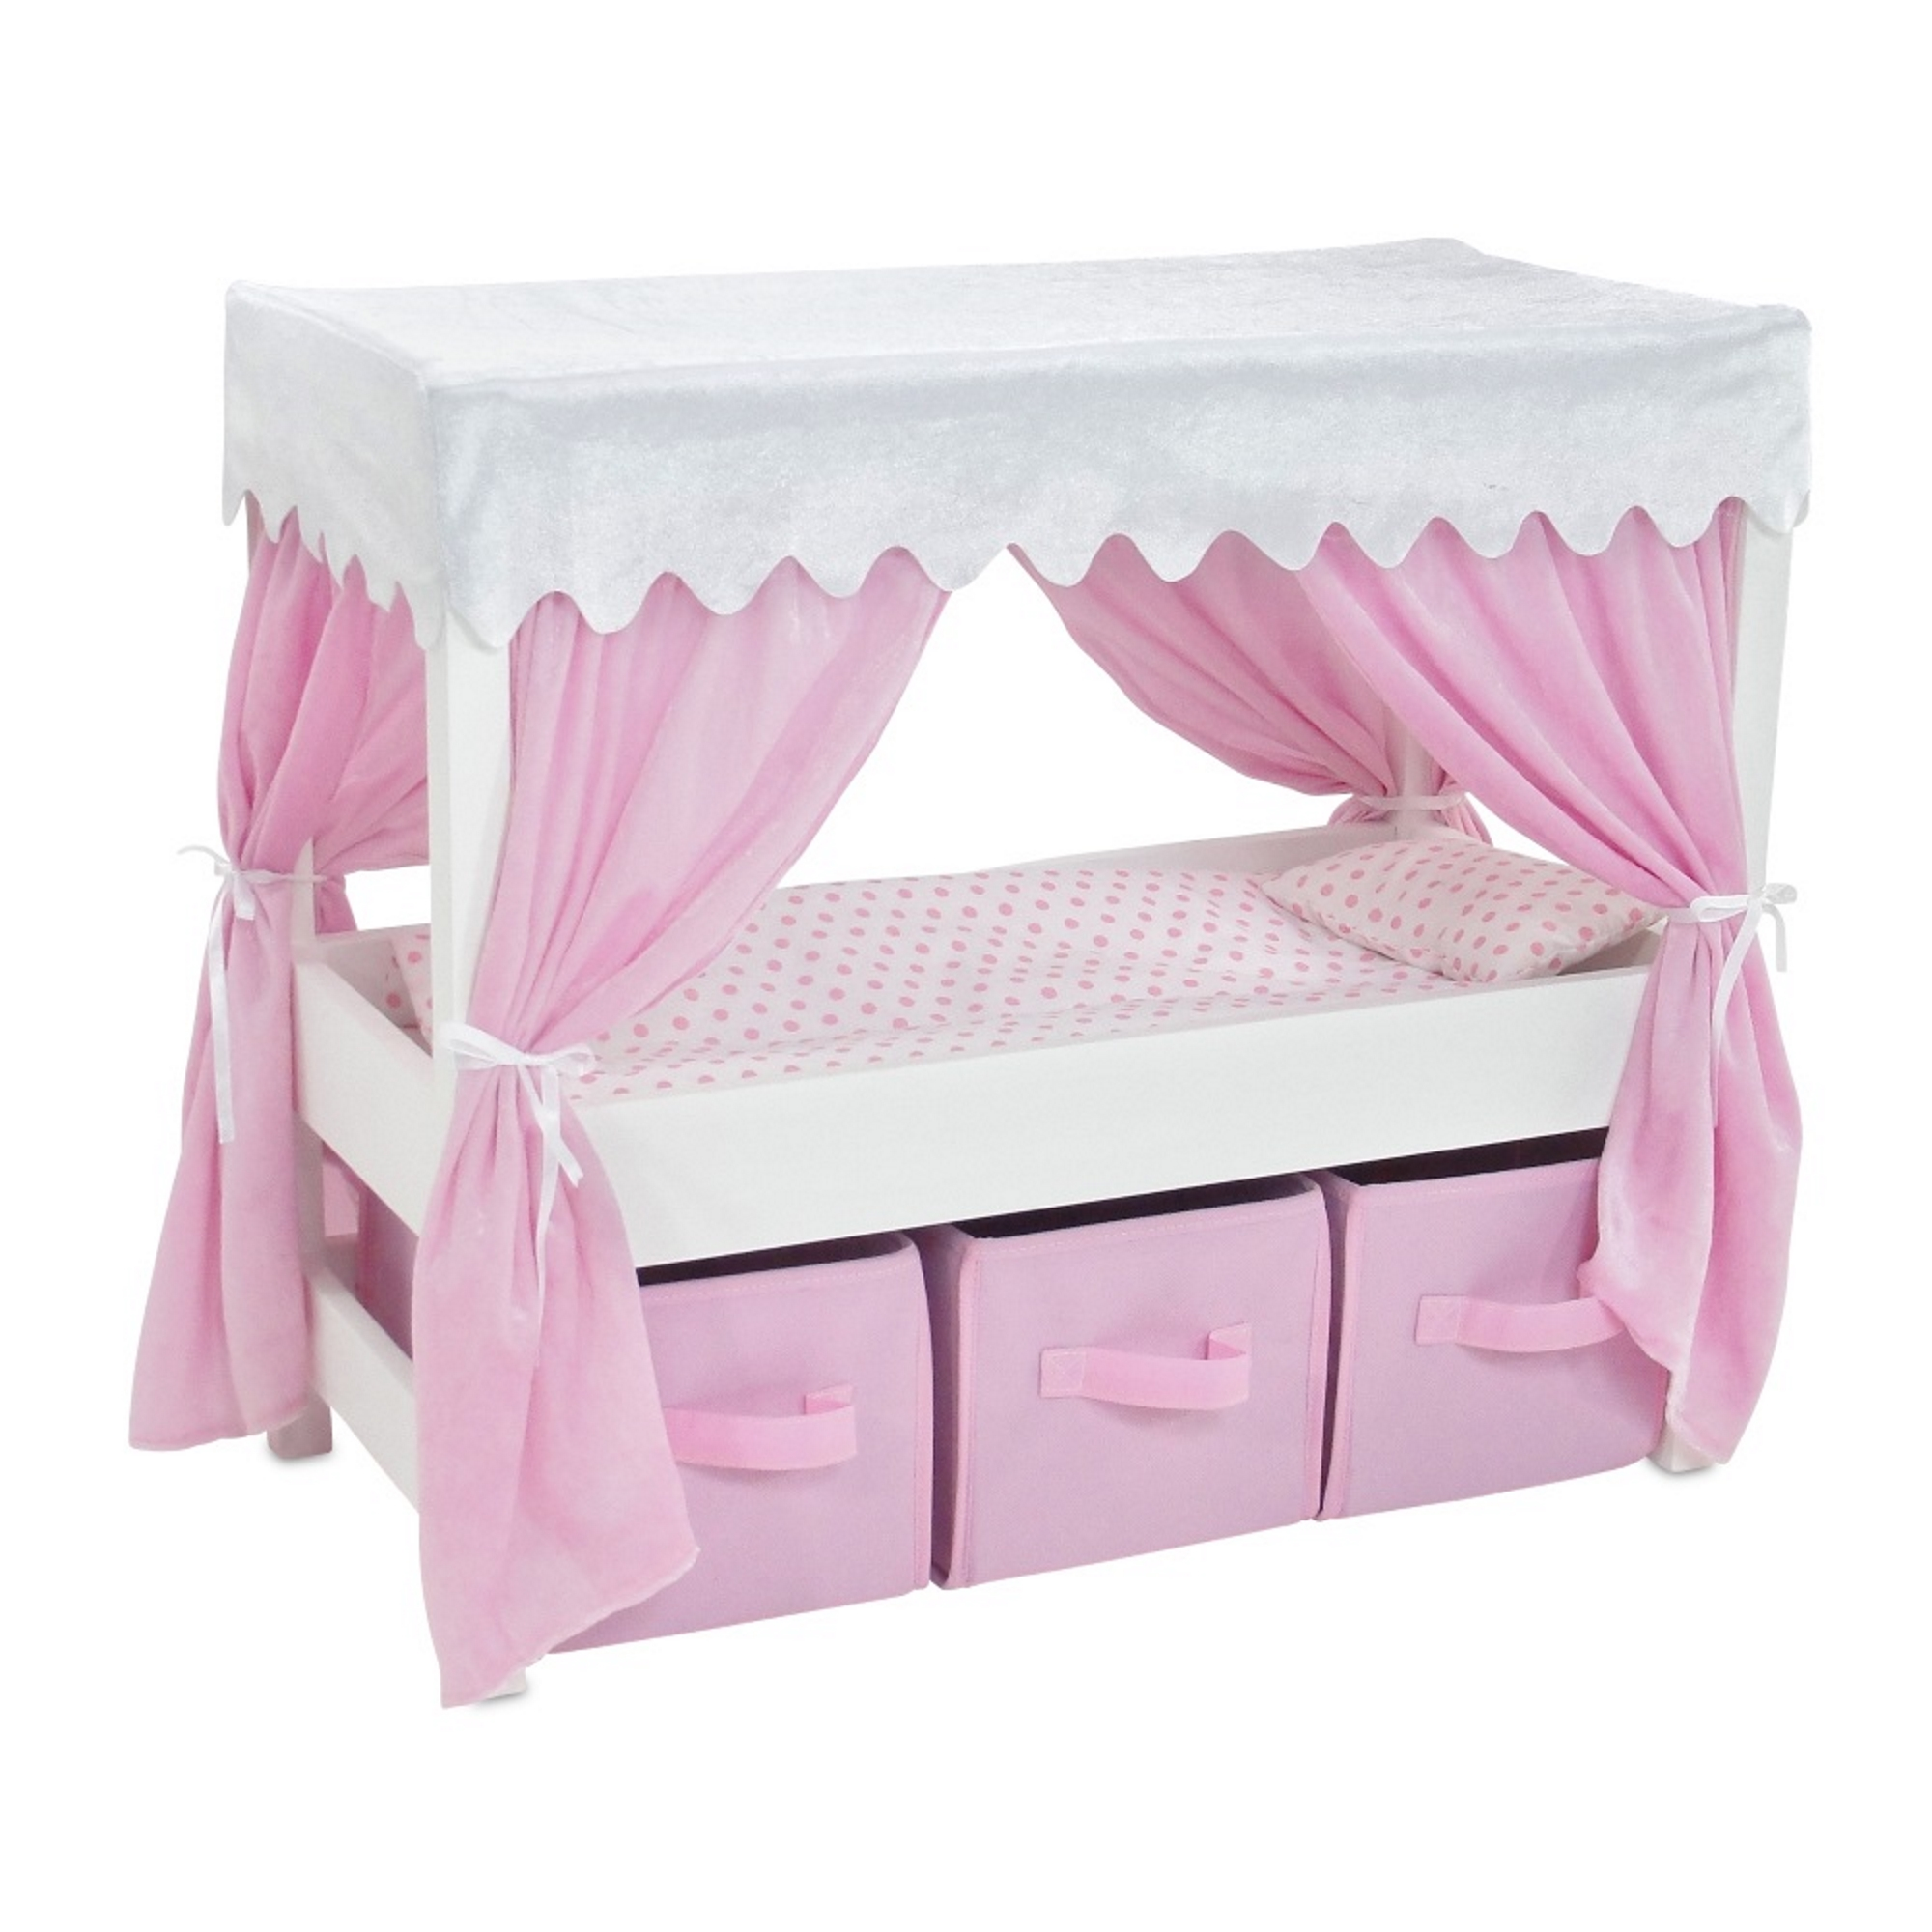 18 Inch Doll Furniture | Lovely Pink and White Canopy Bed with 3 Storage Bins for Doll Clothes, Includes Pink... by Emily Rose Doll Clothes